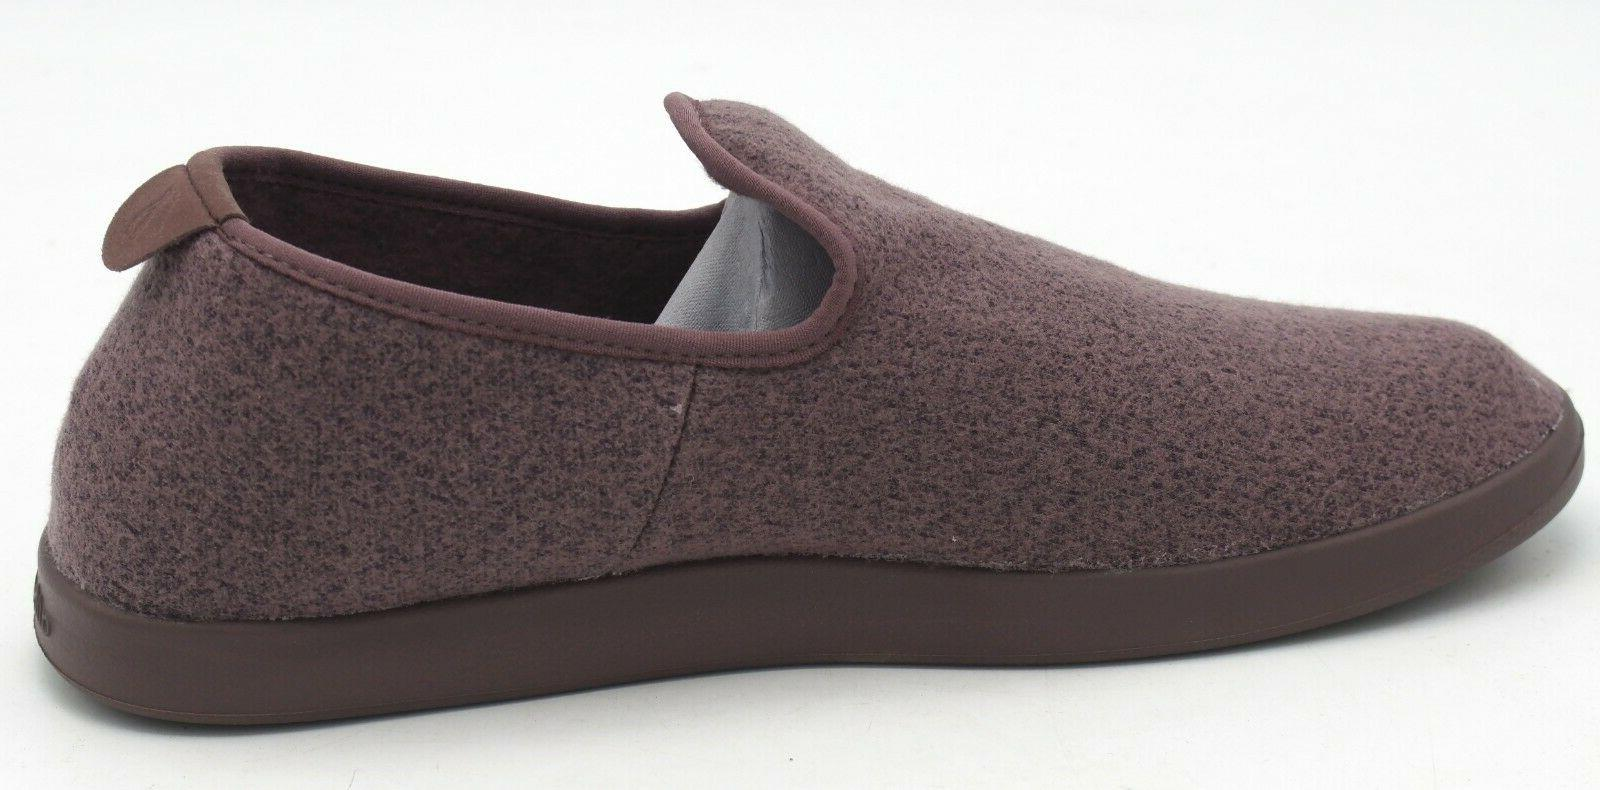 New in Allbirds Wool Lounger Loafer Gray